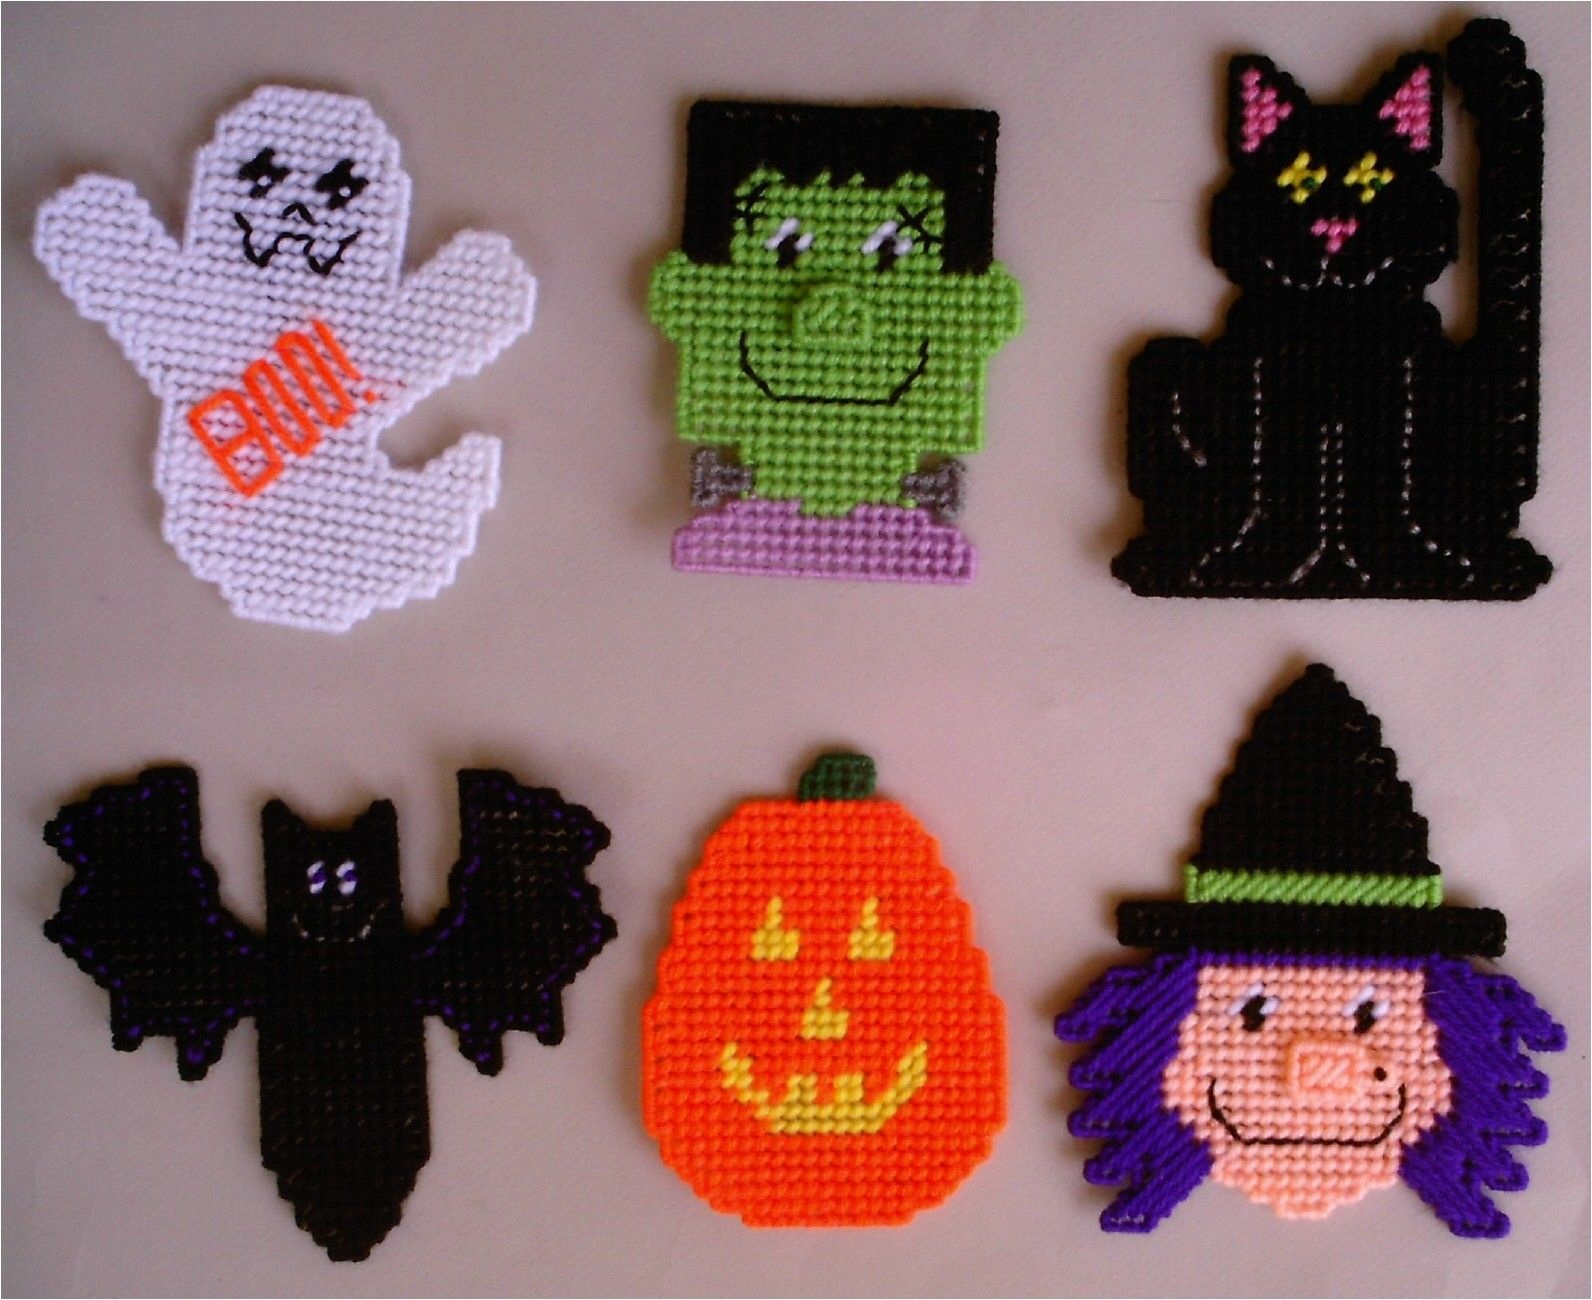 Free Plastic Canvas Magnet Patterns | Plastic Canvas-Halloween - Printable Plastic Canvas Patterns Free Online